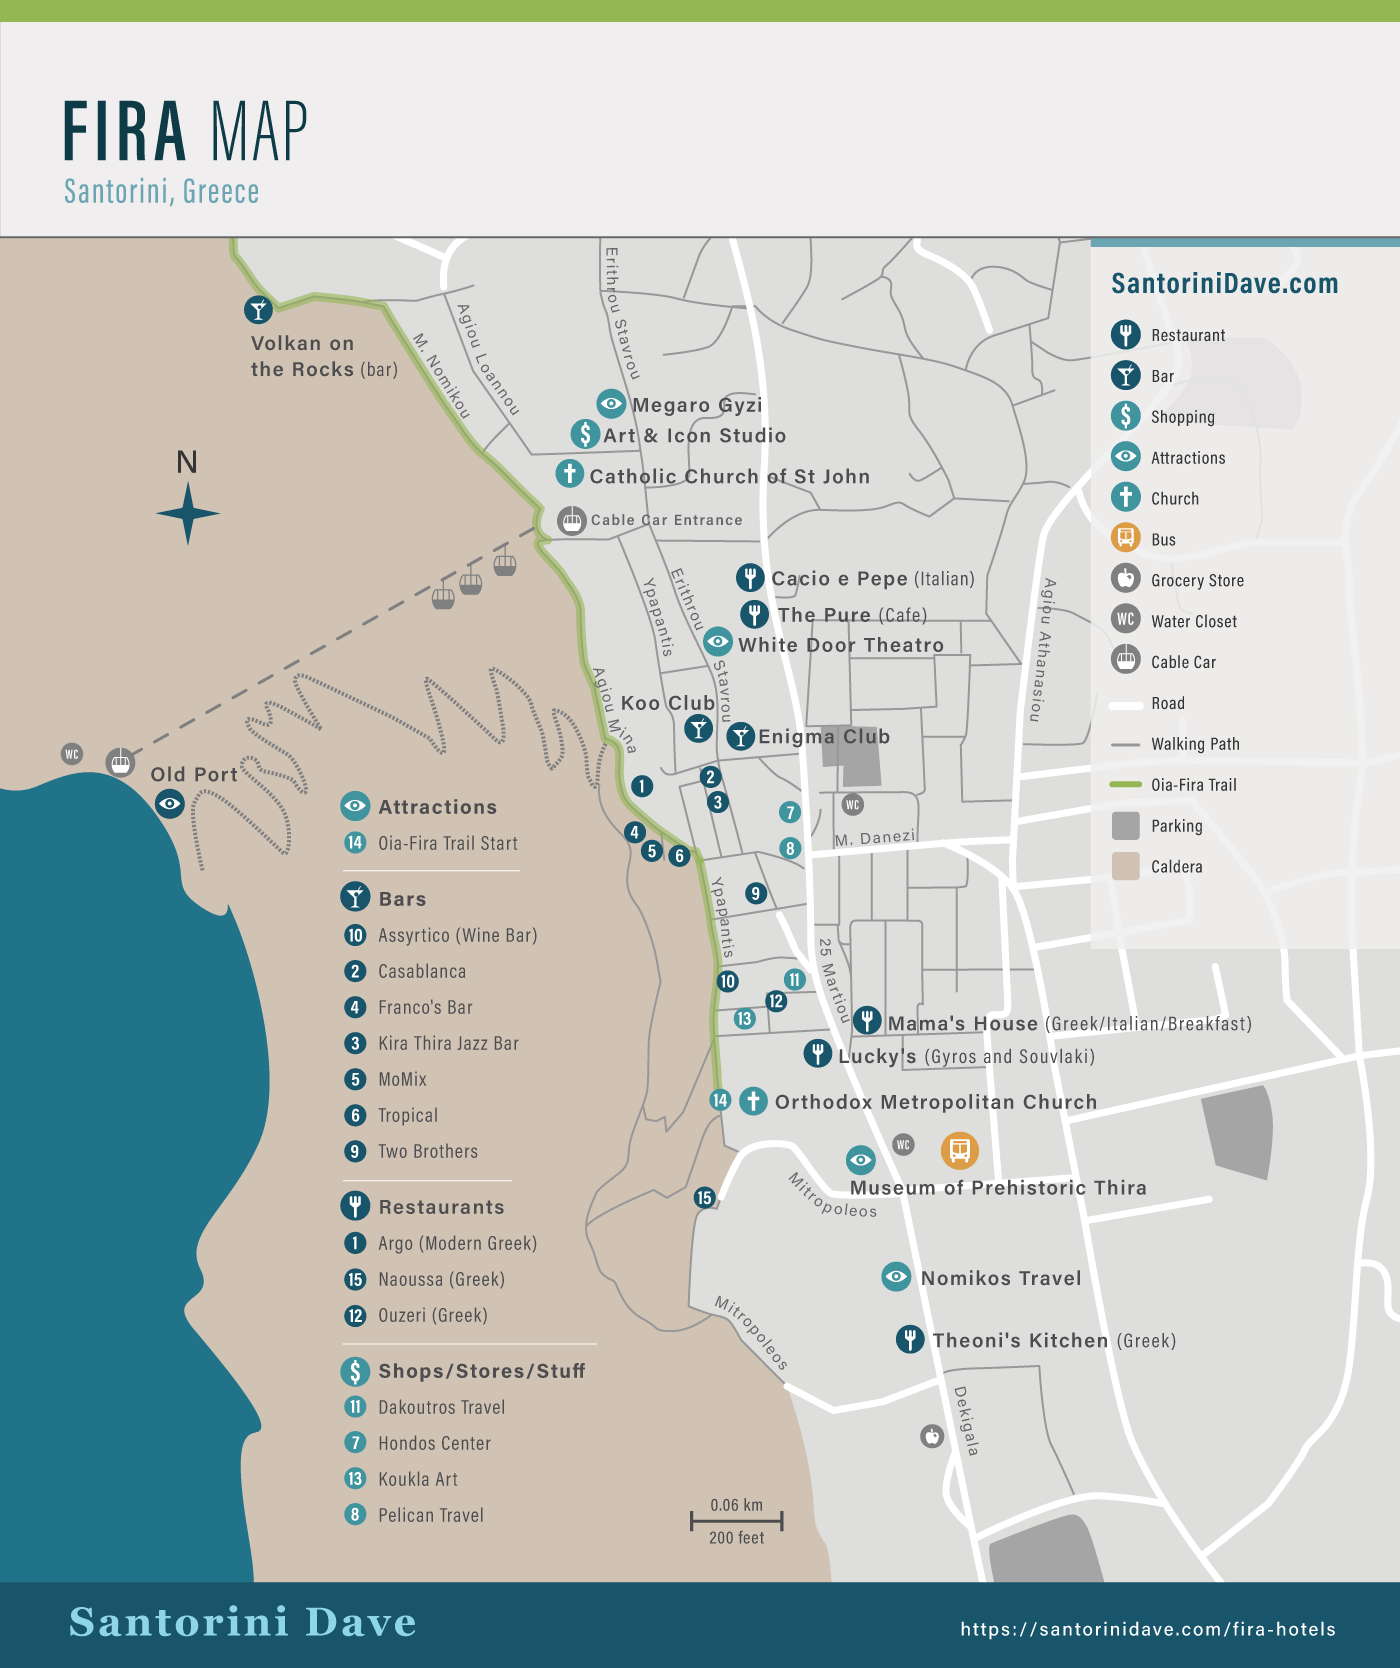 Map of Fira, Santorini, showing bars, restaurants, and activities